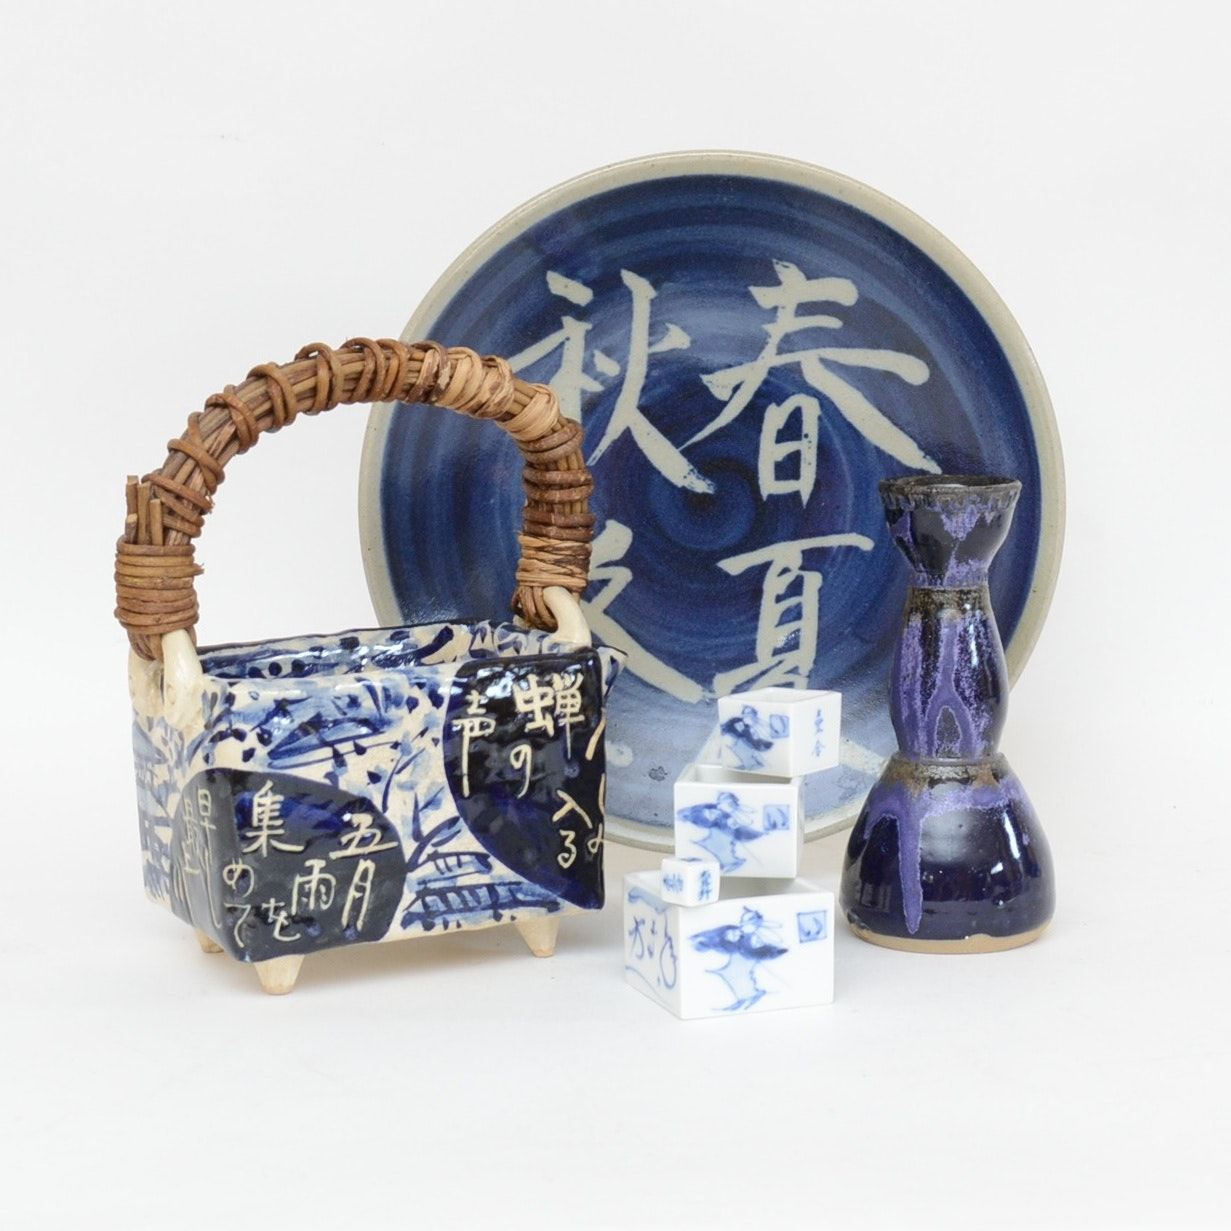 Japanese Hand-Crafted Ceramic Teapot, Plate, and More